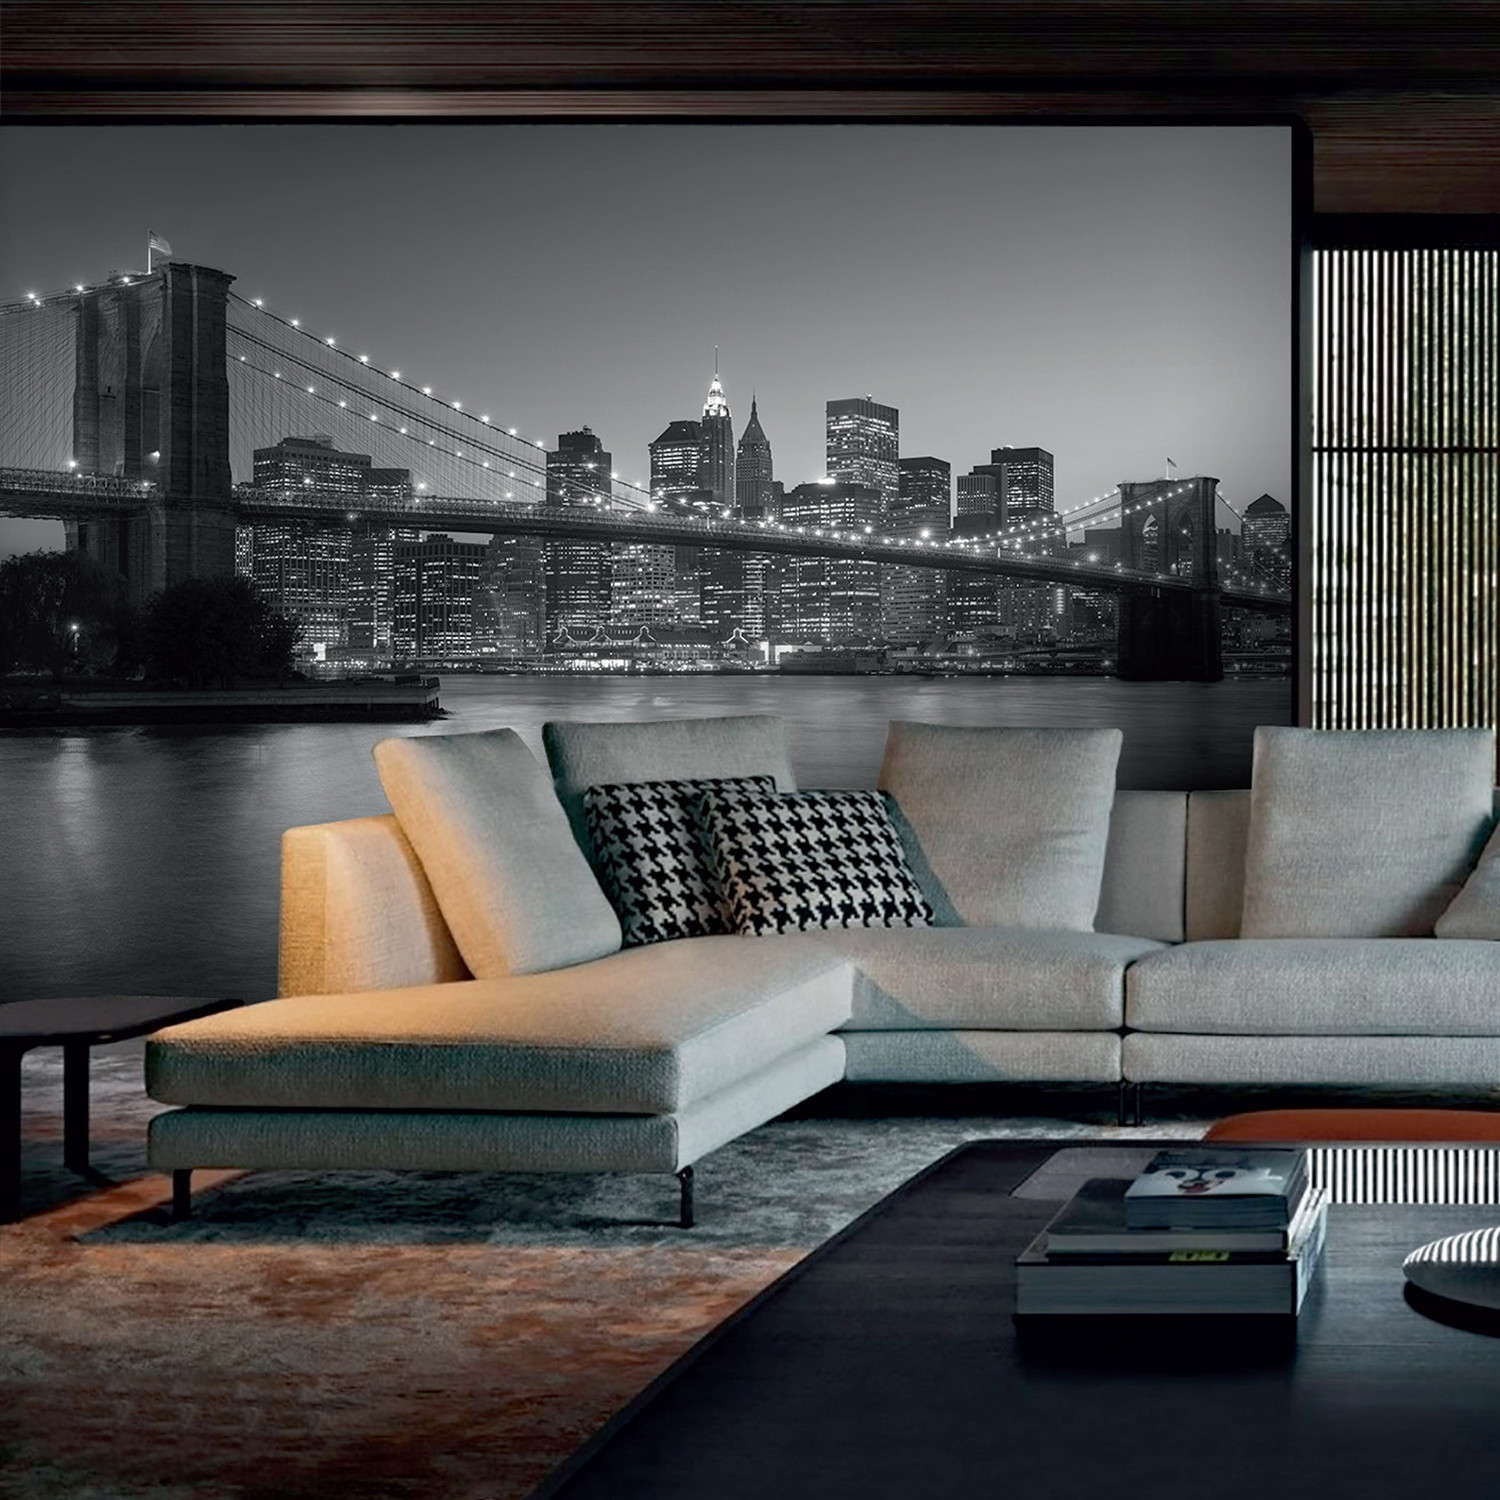 Brooklyn ii 4 8pc giant wall murals touch of modern for 8 sheet giant wall mural